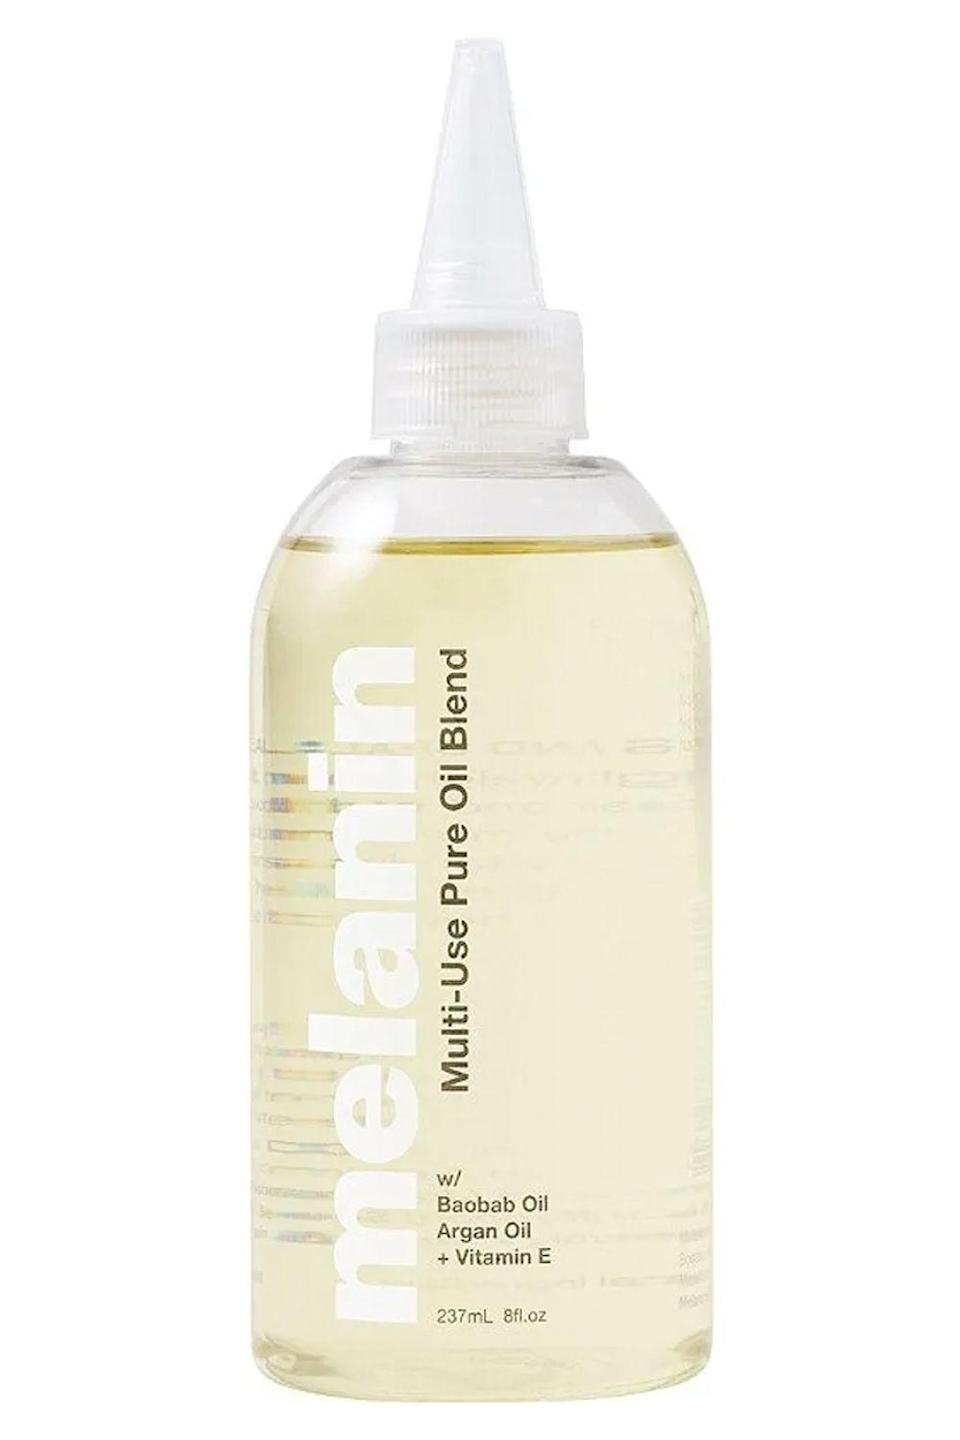 """<p><strong>Melanin Haircare</strong></p><p>ulta.com</p><p><strong>$17.99</strong></p><p><a href=""""https://go.redirectingat.com?id=74968X1596630&url=https%3A%2F%2Fwww.ulta.com%2Fmulti-use-pure-oil-blend%3FproductId%3Dpimprod2018199&sref=https%3A%2F%2Fwww.cosmopolitan.com%2Fstyle-beauty%2Fbeauty%2Fg34358051%2Fblack-owned-hair-products%2F"""" rel=""""nofollow noopener"""" target=""""_blank"""" data-ylk=""""slk:Shop Now"""" class=""""link rapid-noclick-resp"""">Shop Now</a></p><p><strong>This Black-owned hair product really lives up to its name.</strong> You can work it into wet hair to seal in moisture, before you apply <a href=""""https://www.cosmopolitan.com/style-beauty/beauty/a23066979/best-curl-cream-natural-hair/"""" rel=""""nofollow noopener"""" target=""""_blank"""" data-ylk=""""slk:curl cream"""" class=""""link rapid-noclick-resp"""">curl cream</a> to help set your style, or as a detangling treatment before you shampoo your curls. It's all thanks to the lightweight mix of argan oil, sweet almond oil, and jojoba oil (among others) that allows this product to hydrate, soften, and detangle.</p>"""